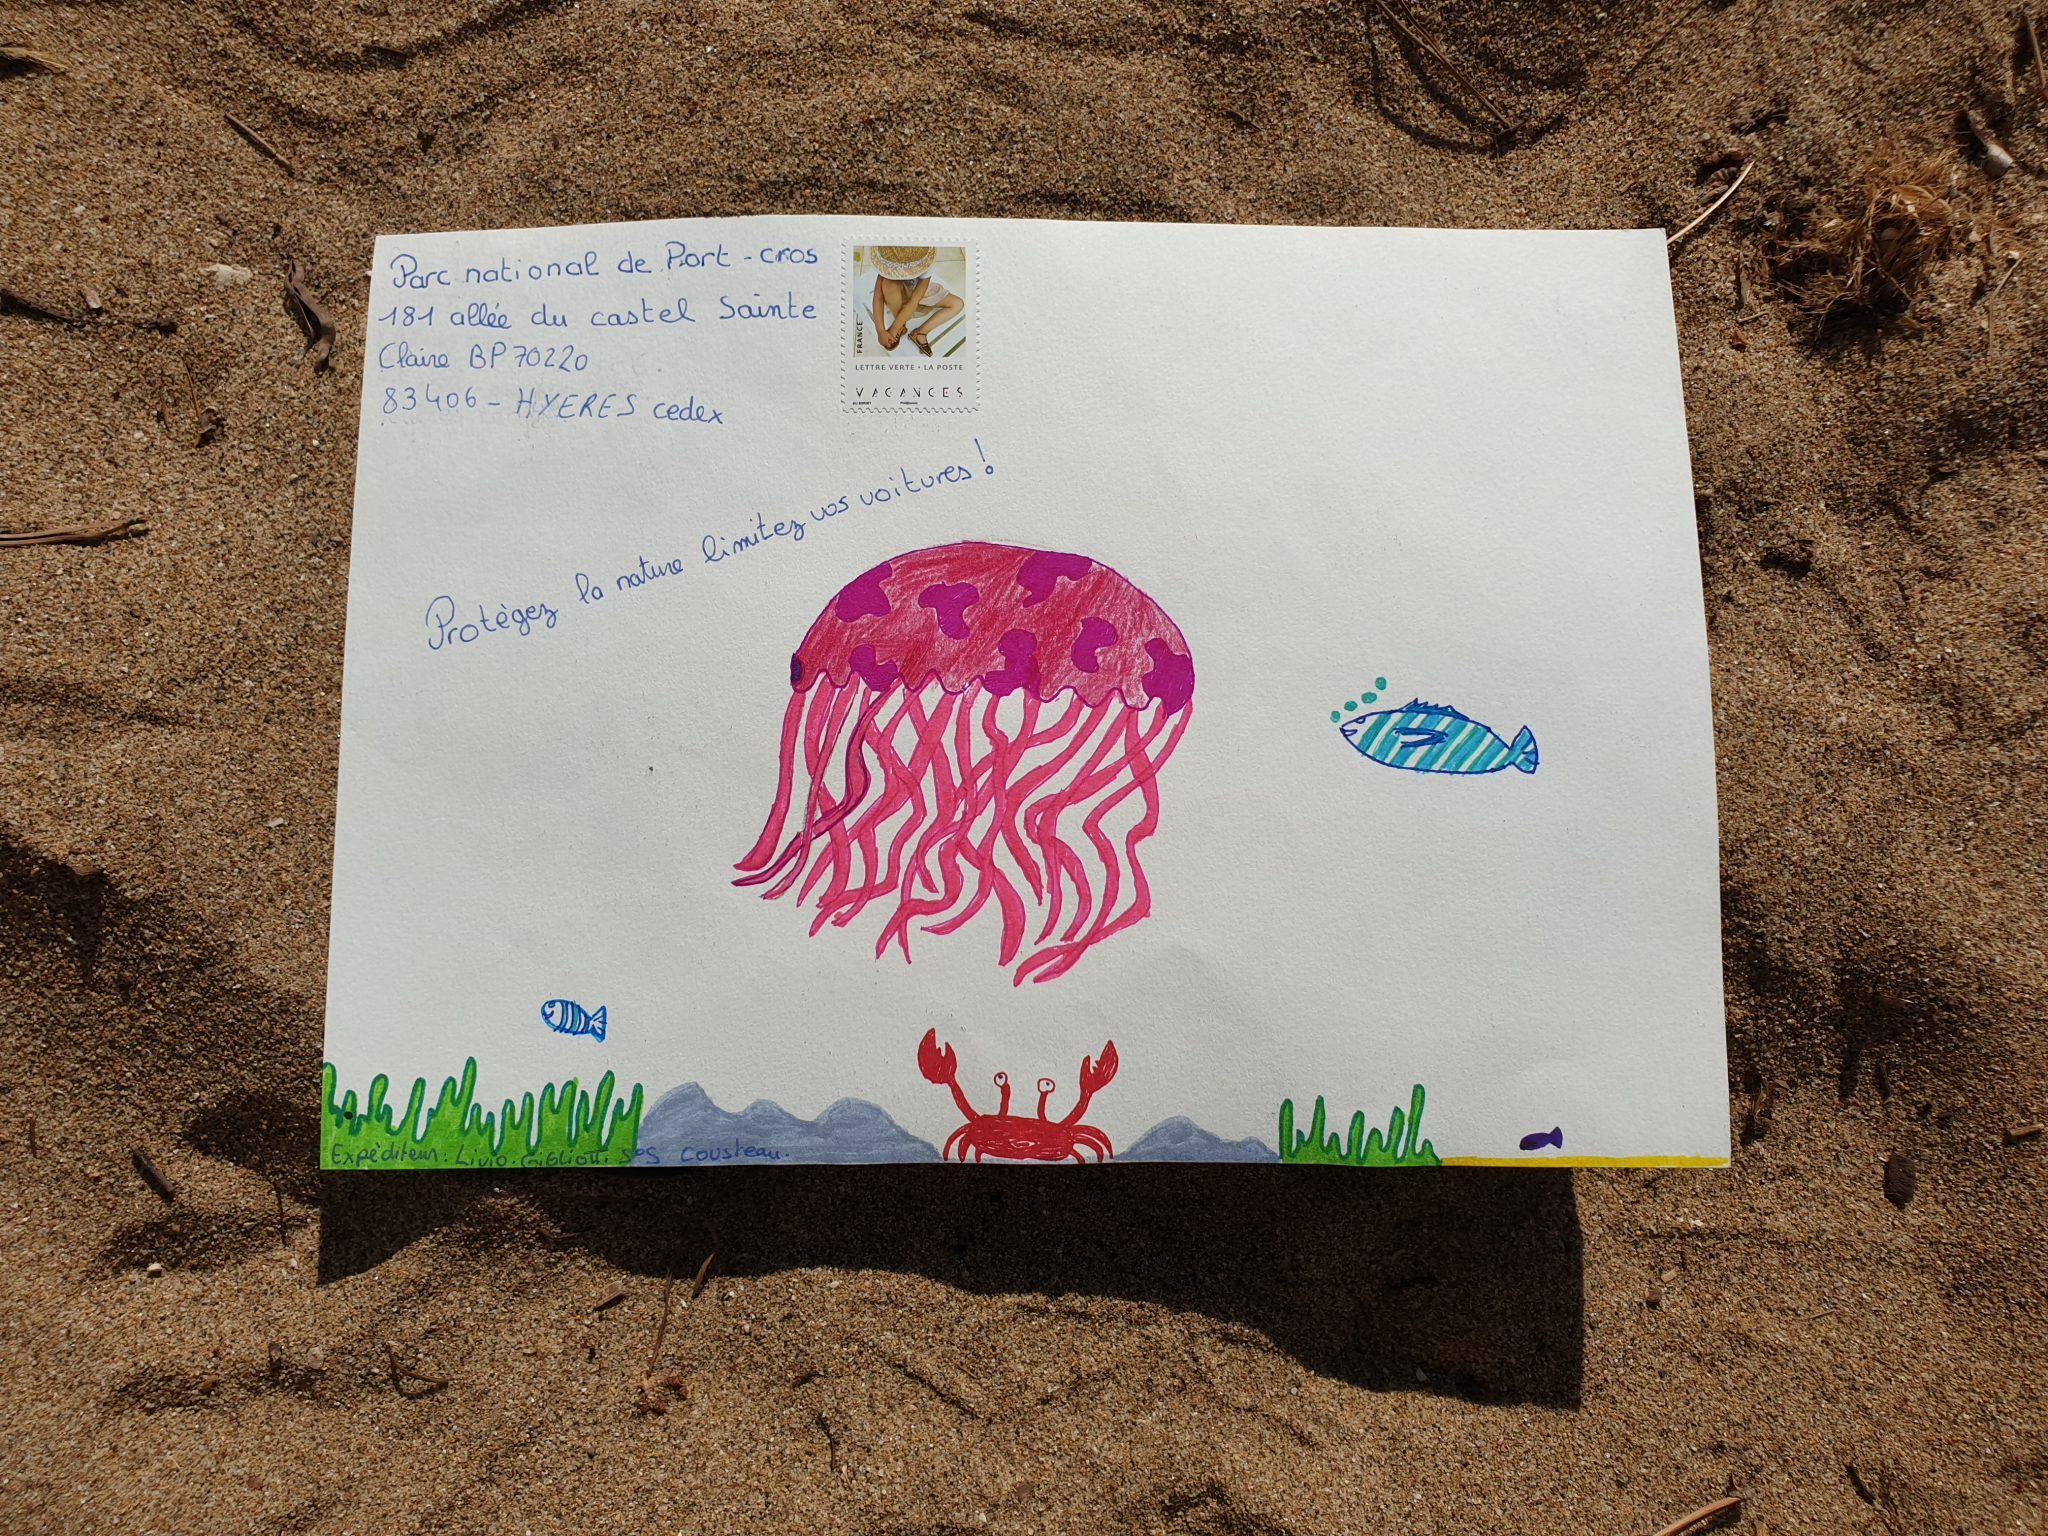 Mail Art Port Cros 2019 37